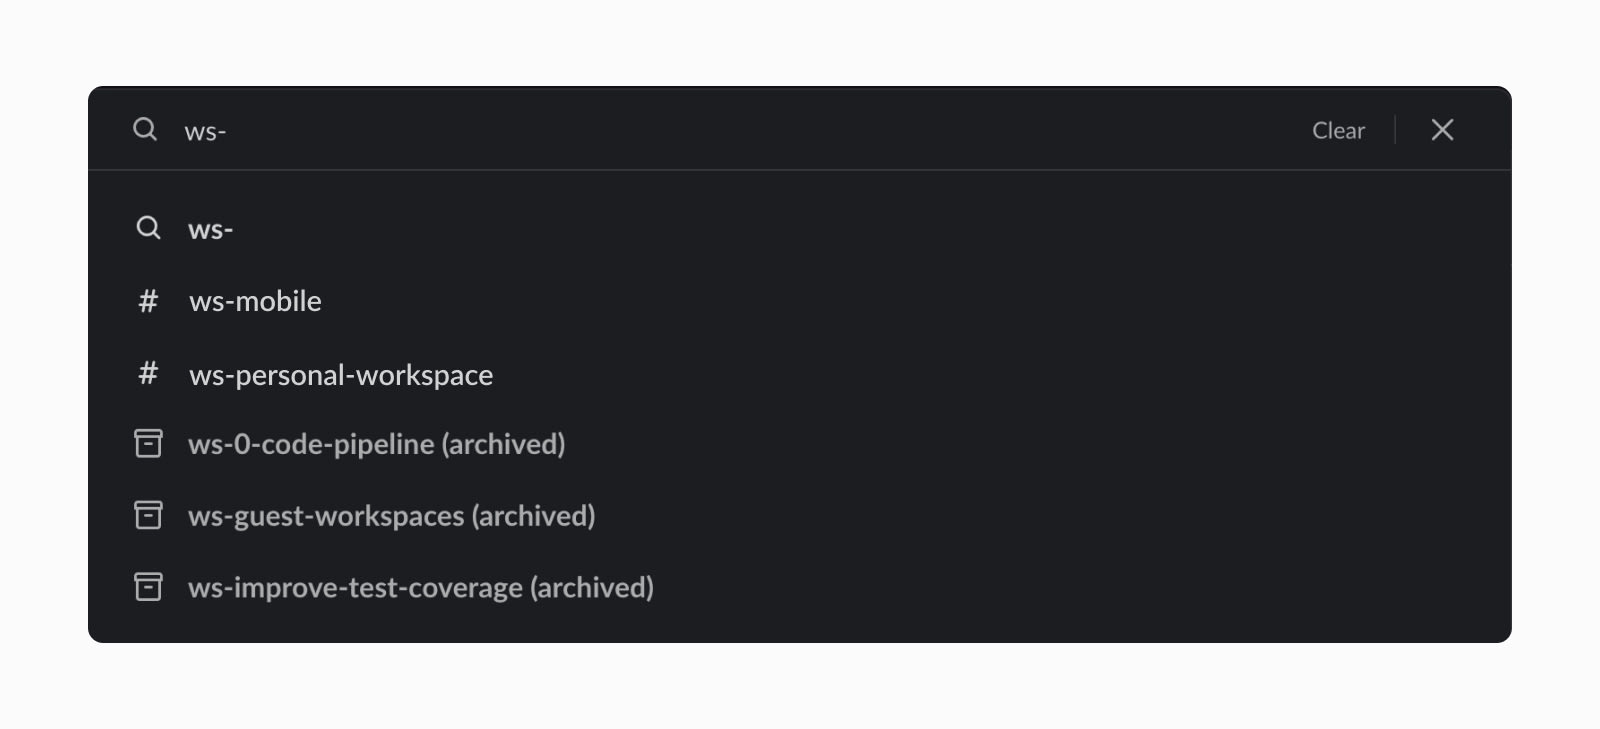 Group Slack channels by topic